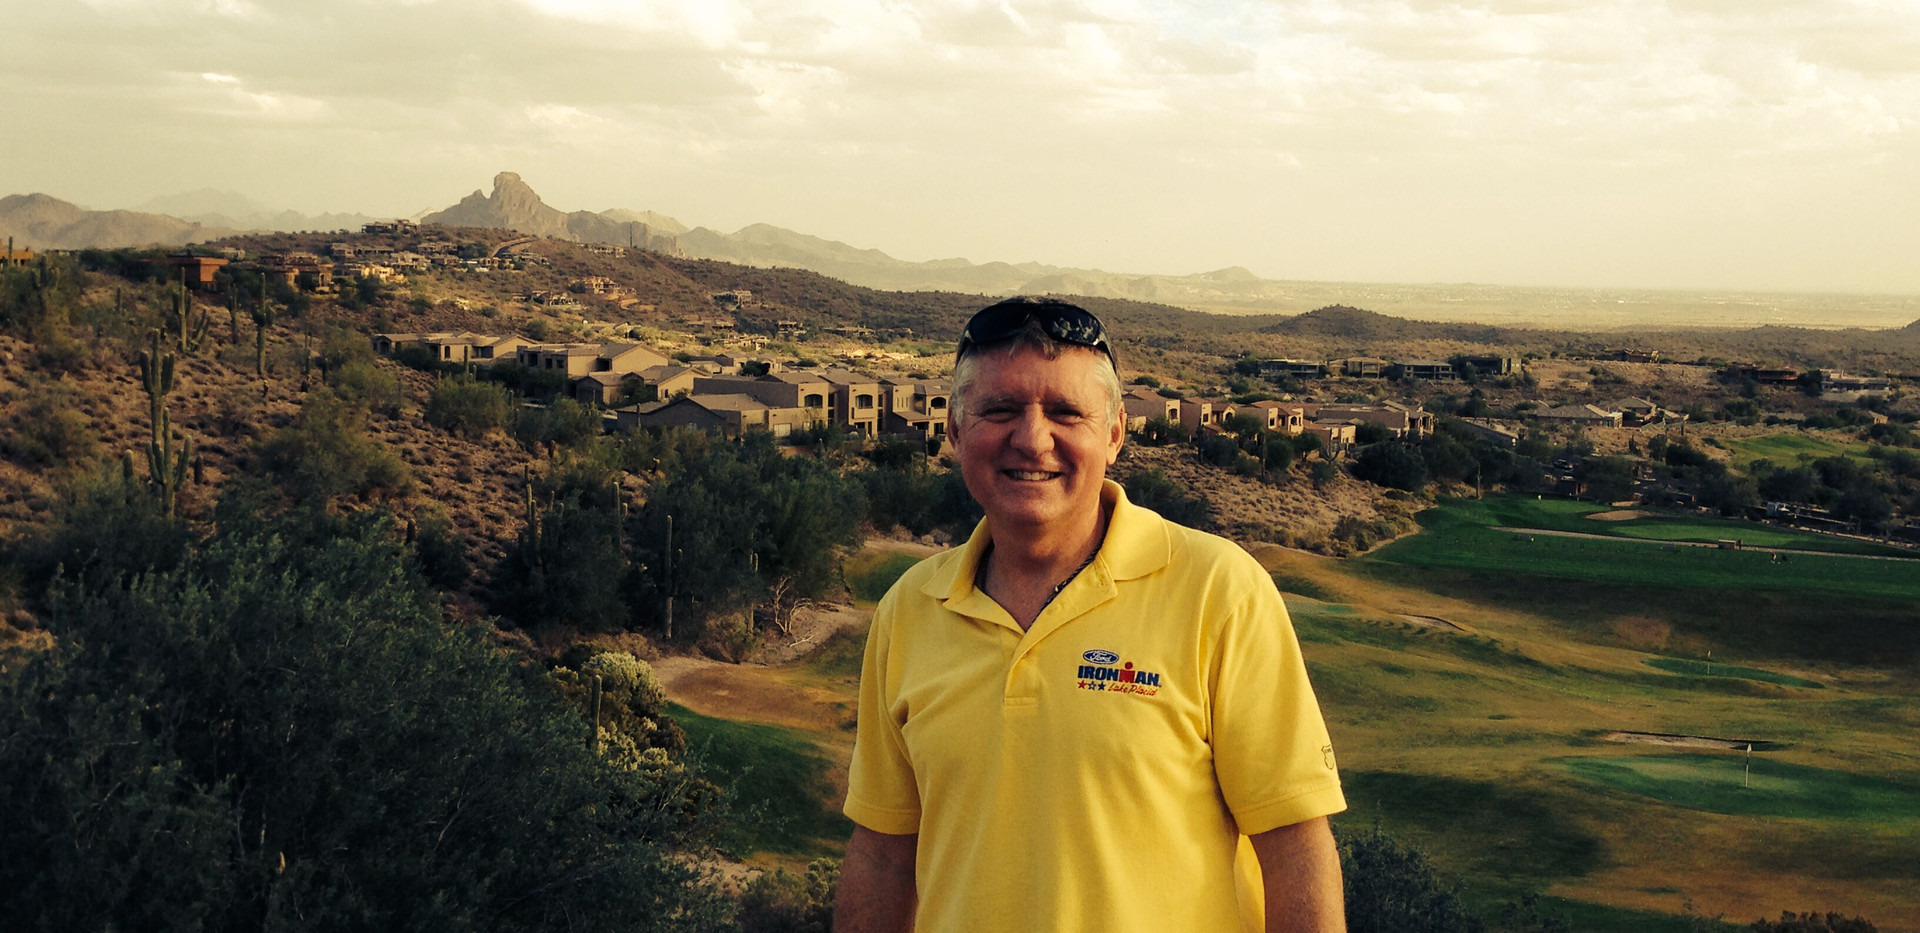 Ask Gene about sporting events such as marathon running or golf